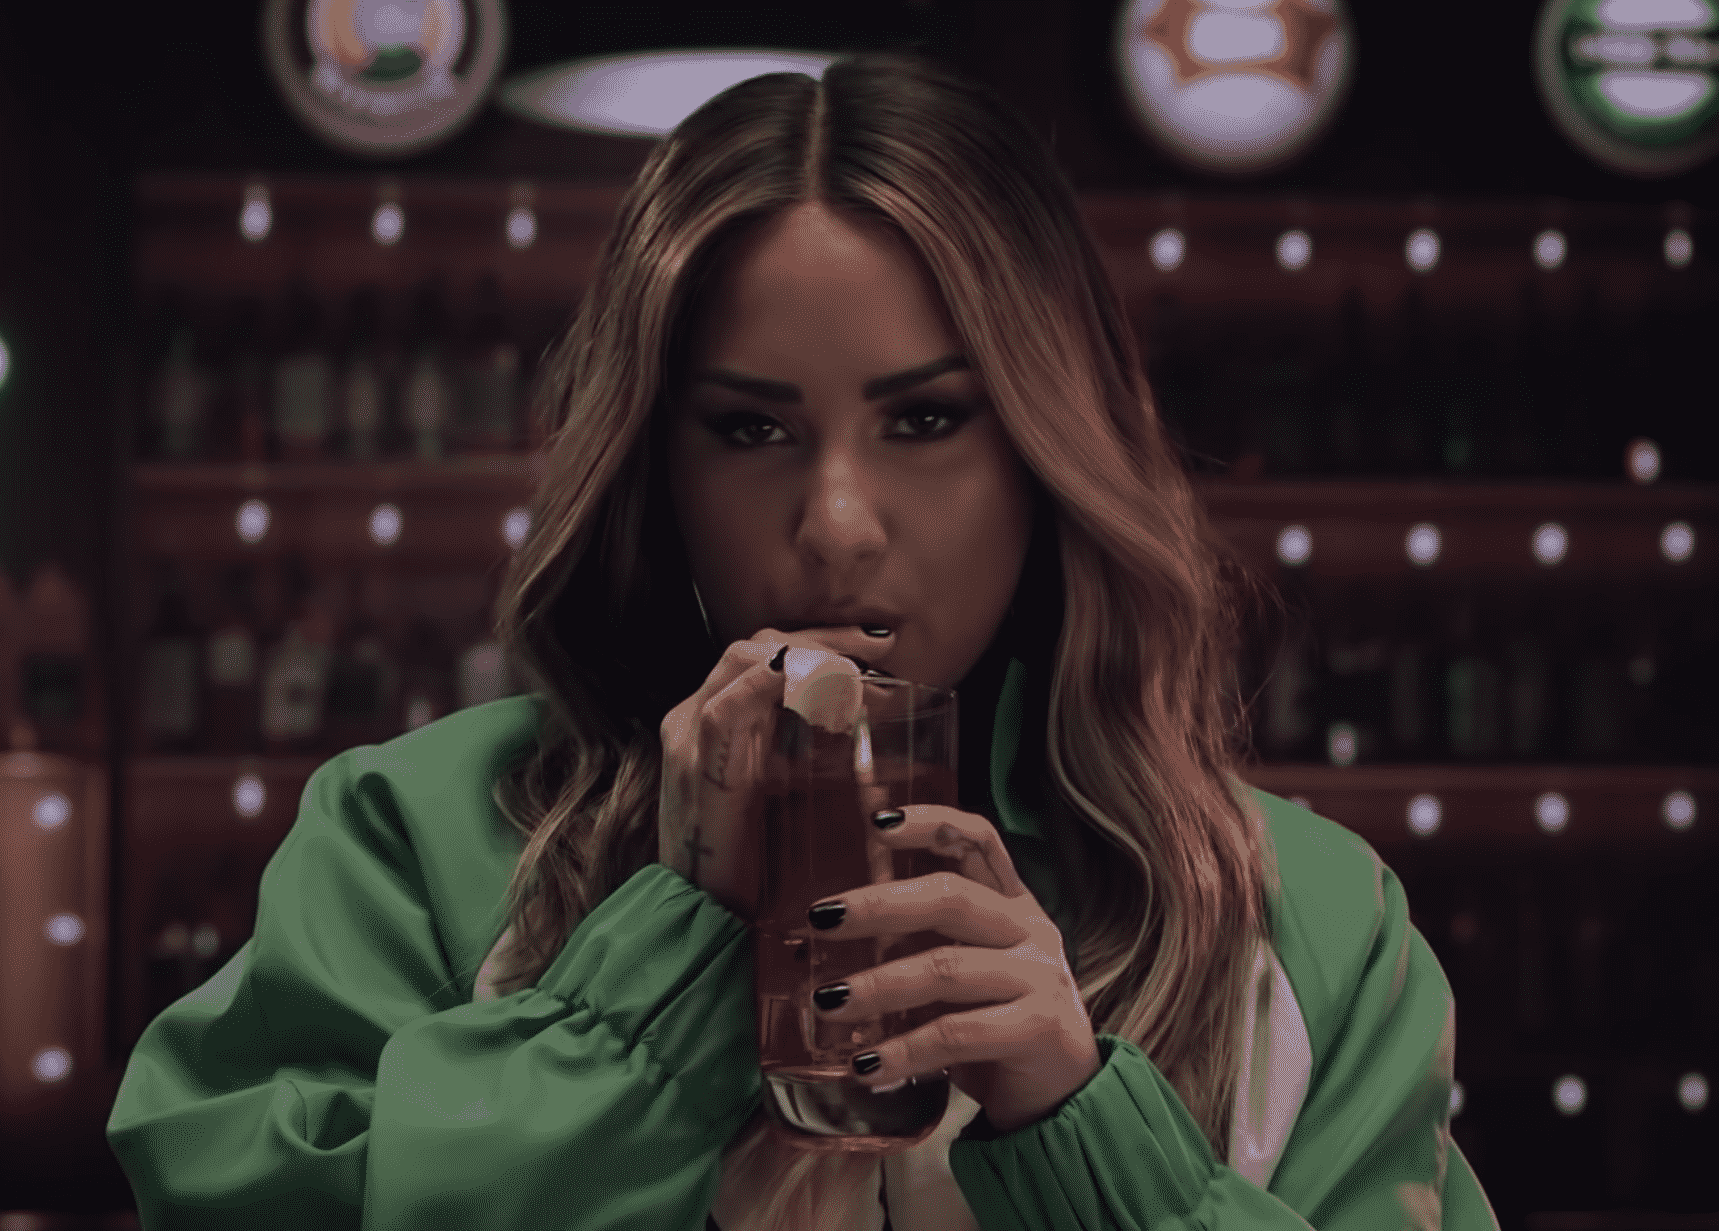 Demi Lovato's 'California Sober' Sets A Dangerous Example For Those Struggling With Addiction 1